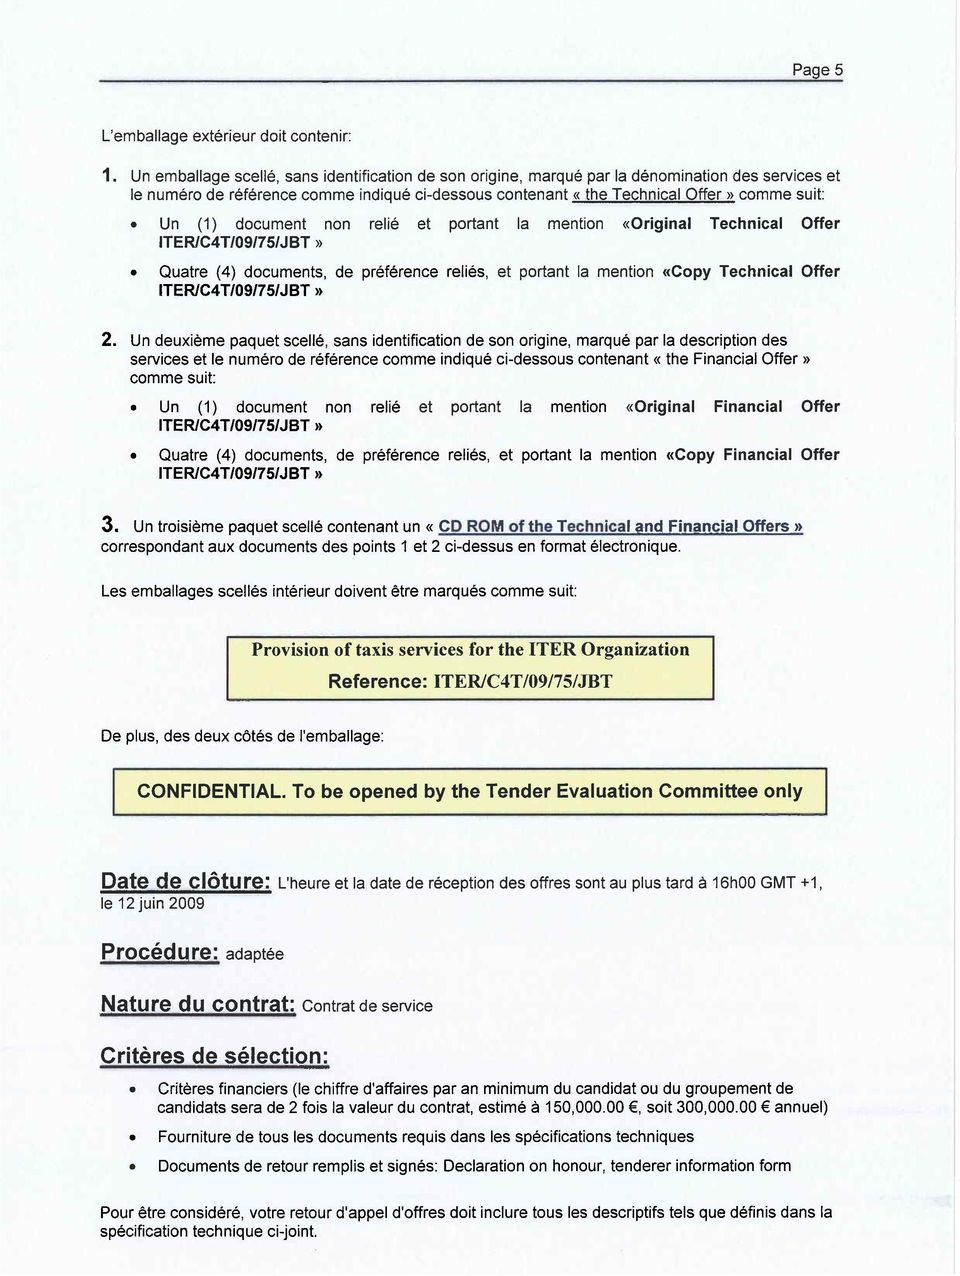 Un (1) document non relié et portant la mention ((Original Technical Offer. Quatre (4) documents, de préférence reliés, et portant la mention ((Copy Technical Offer 2.